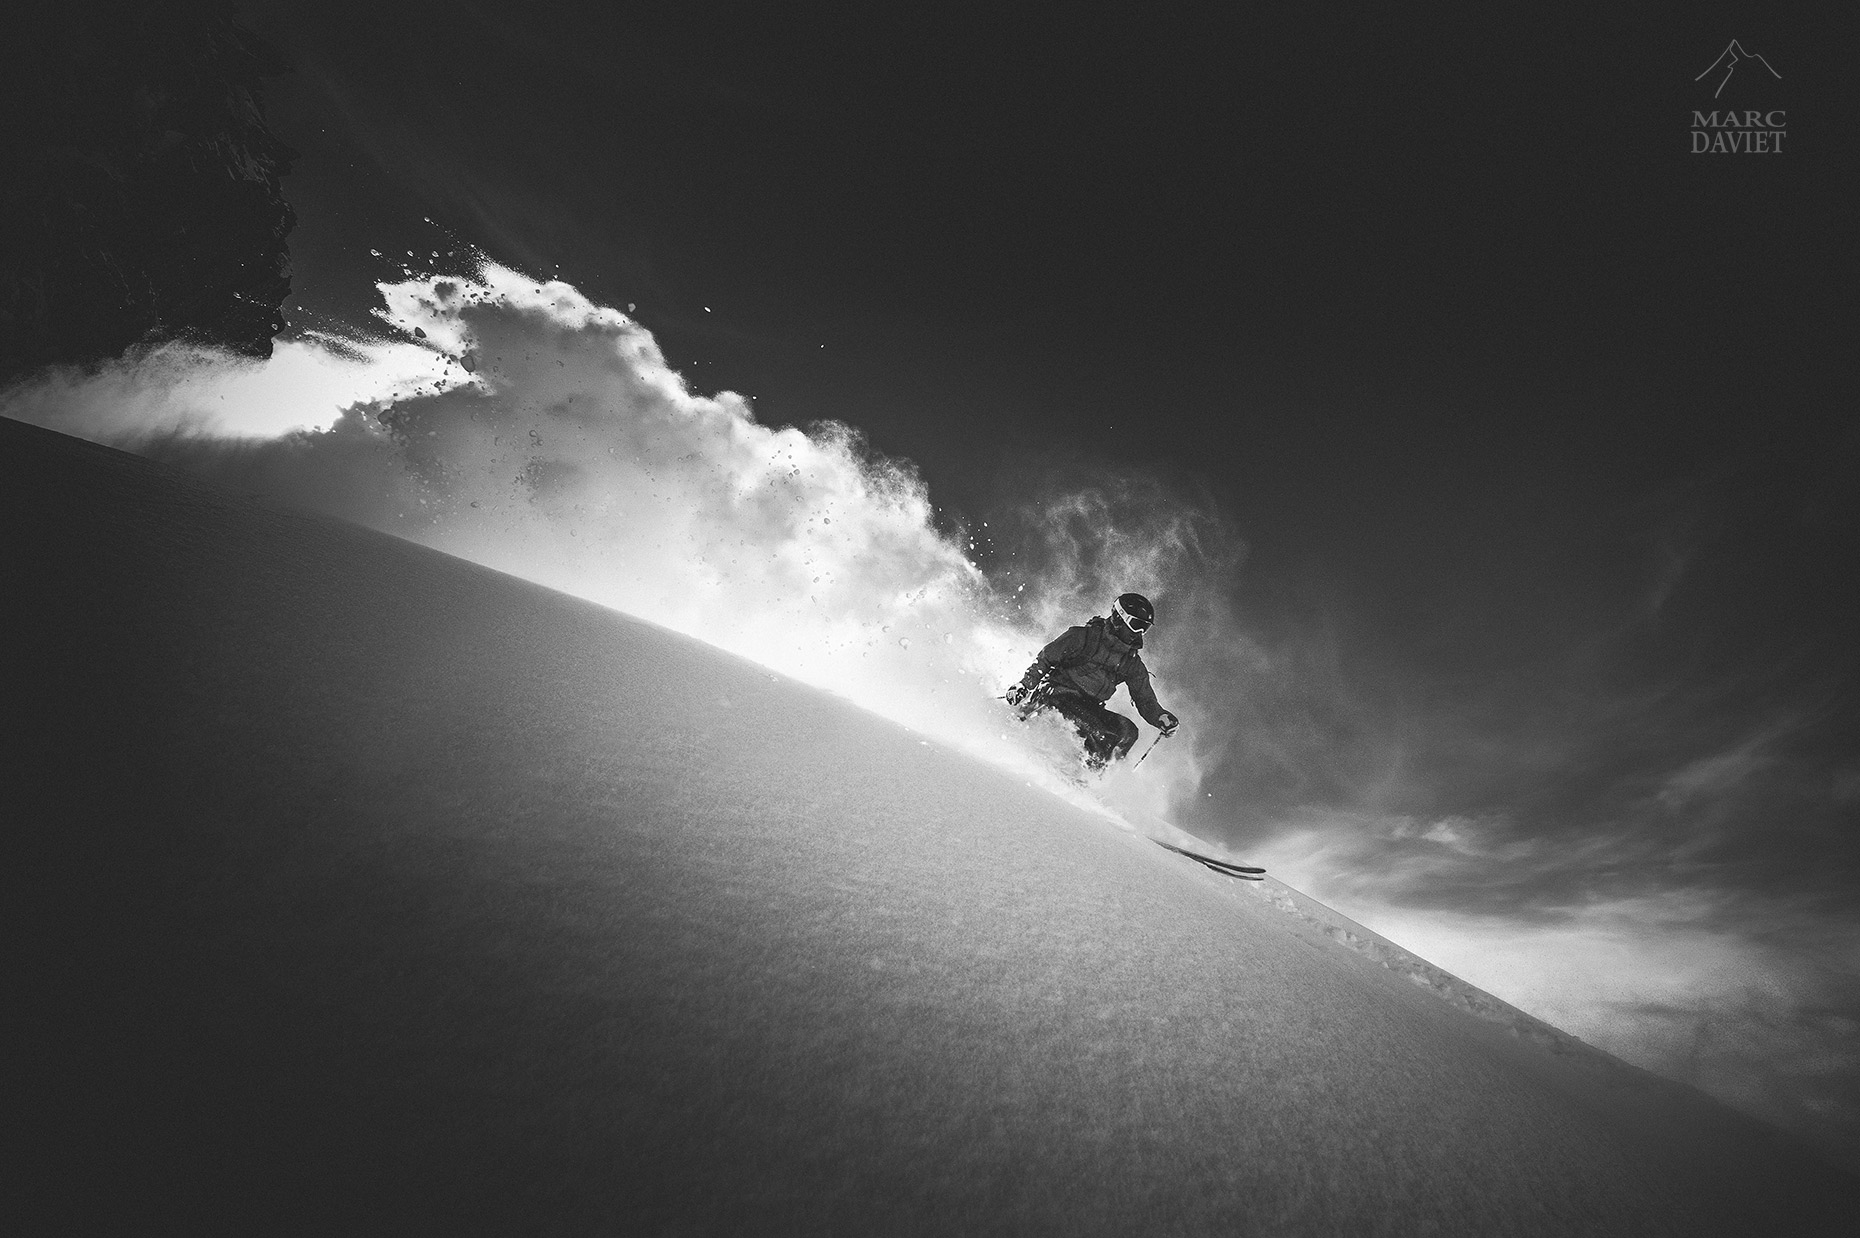 Powder - Chamonix - Marc Daviet Photography